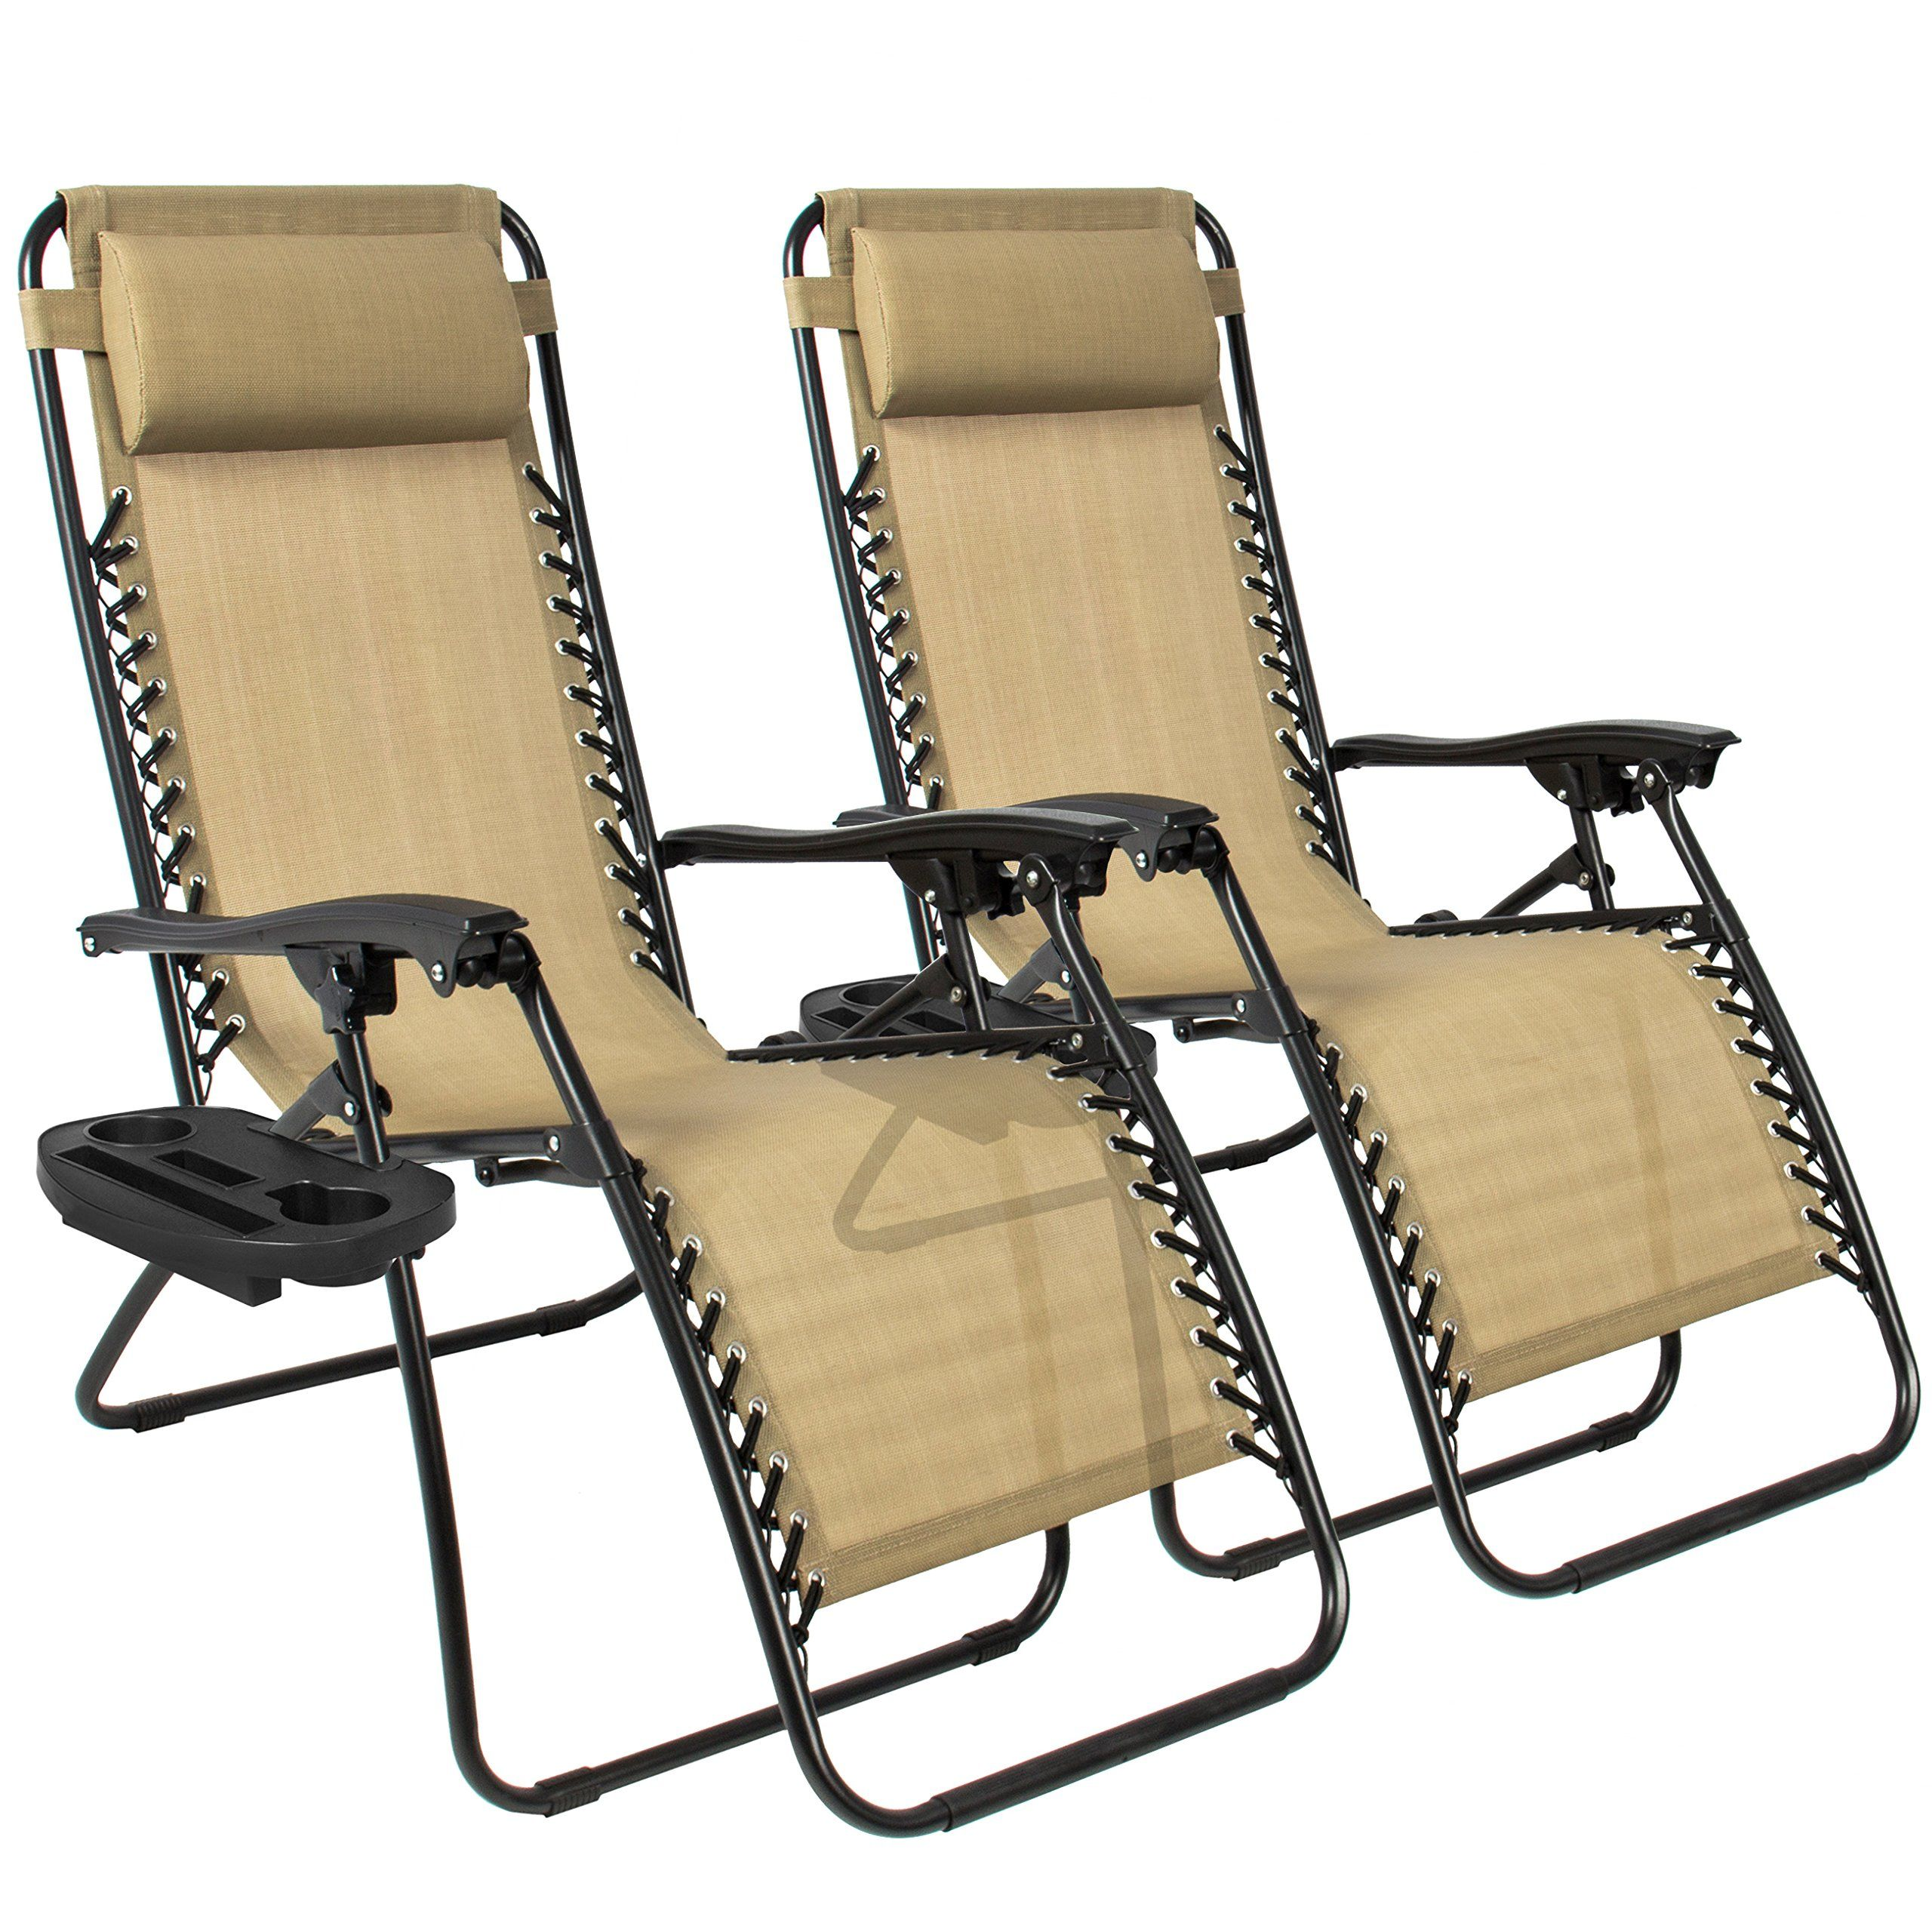 Best ChoiceProducts Zero Gravity Chairs Tan Lounge Patio Chairs Outdoor  Yard Beach New (Set Of